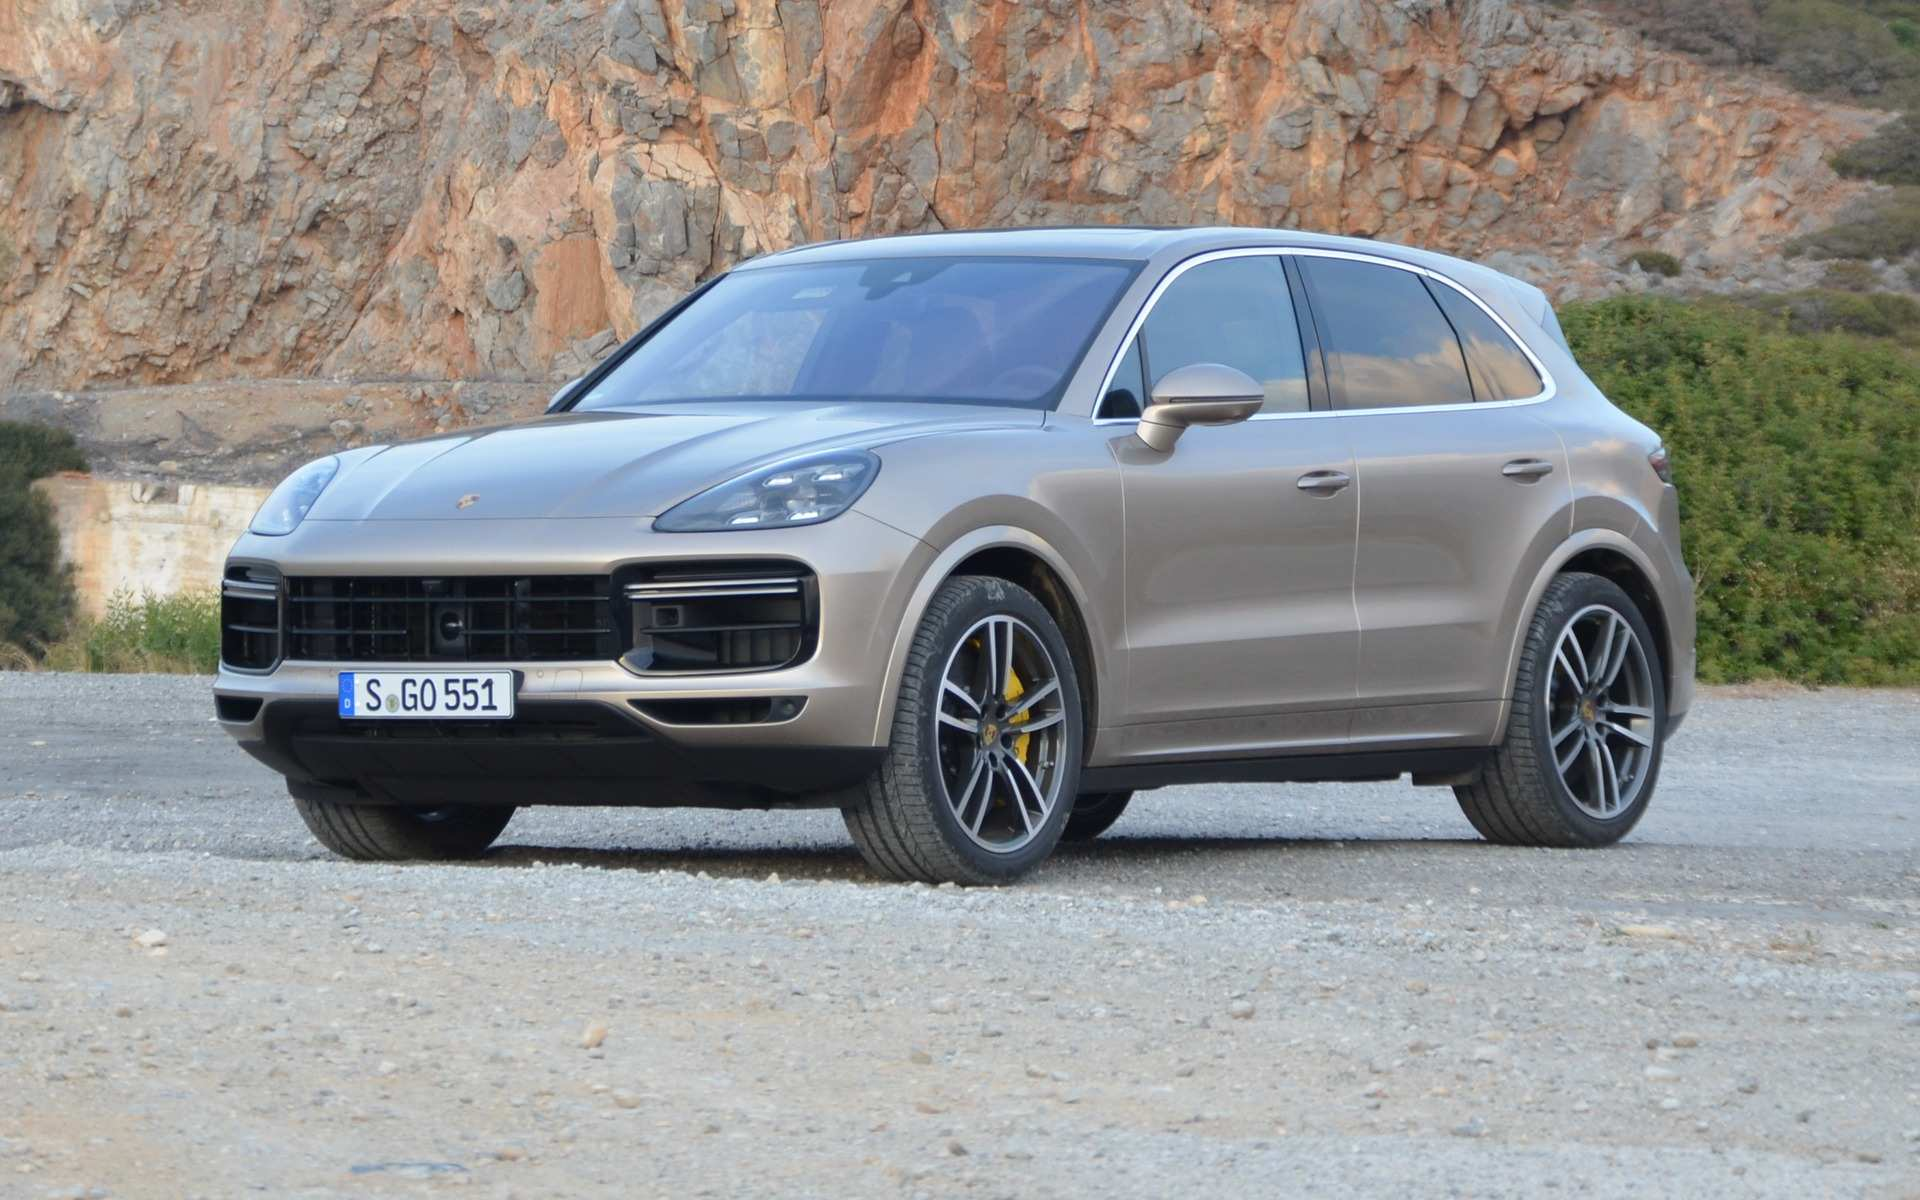 23 New 2019 Porsche Cayenne Review for 2019 Porsche Cayenne